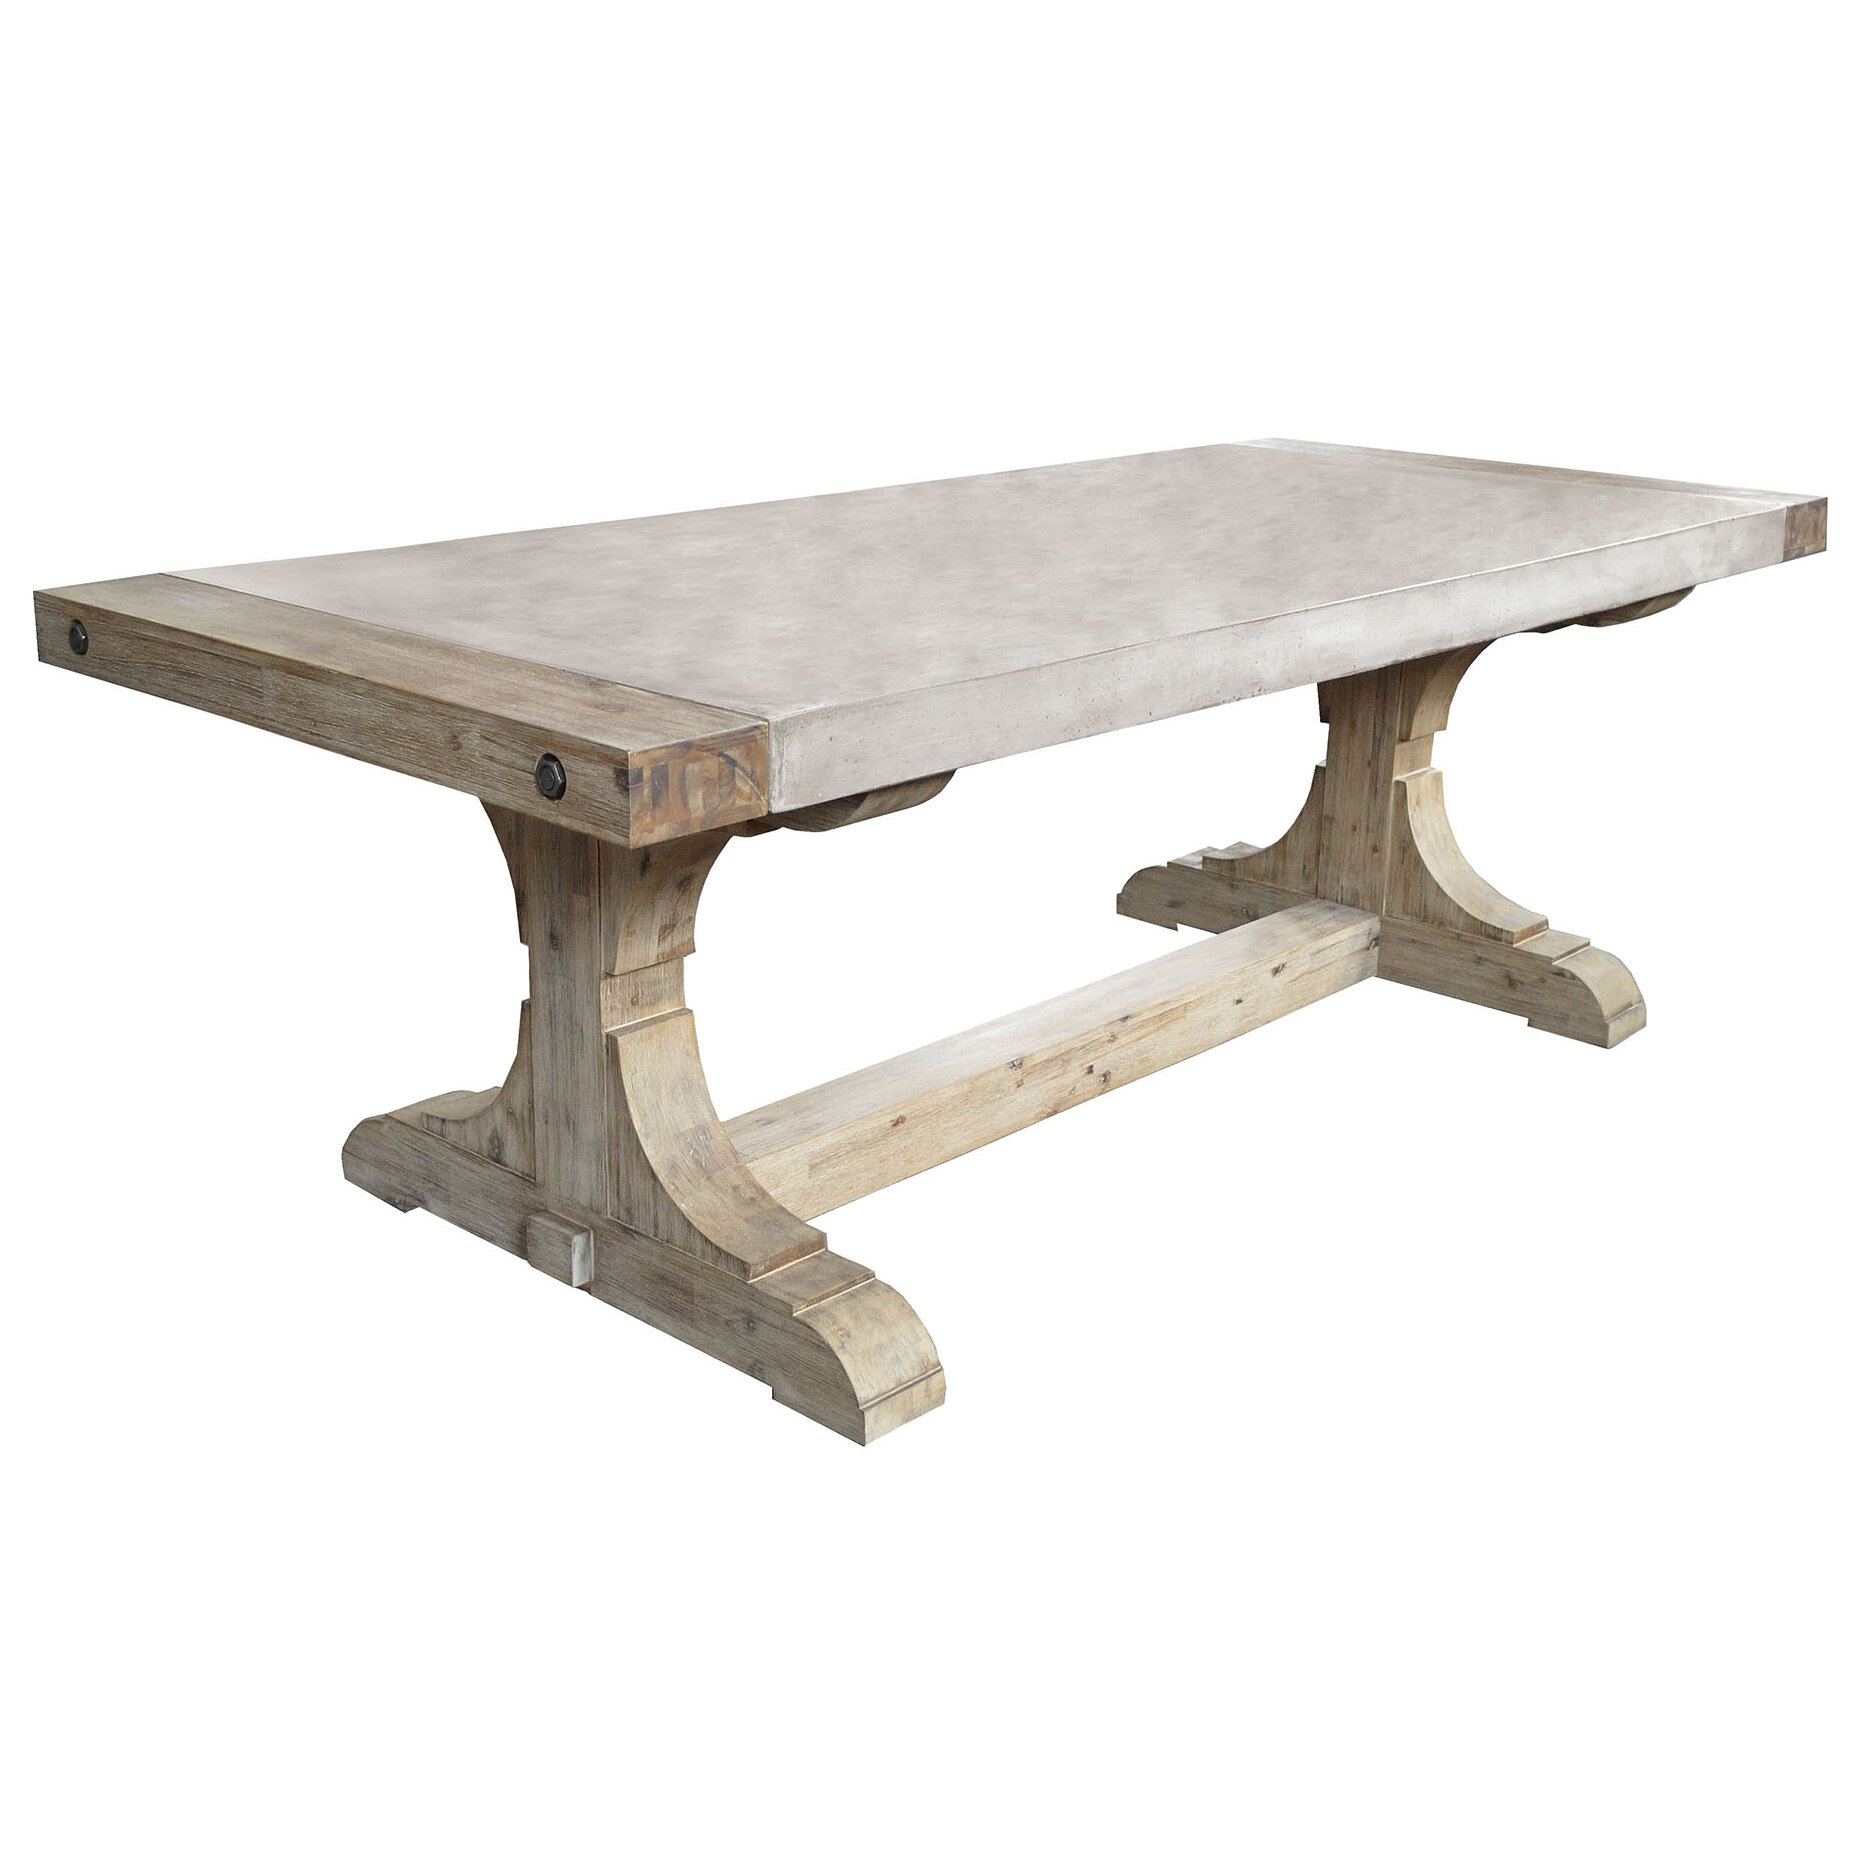 concrete and wood furniture. Concrete And Wood Furniture O